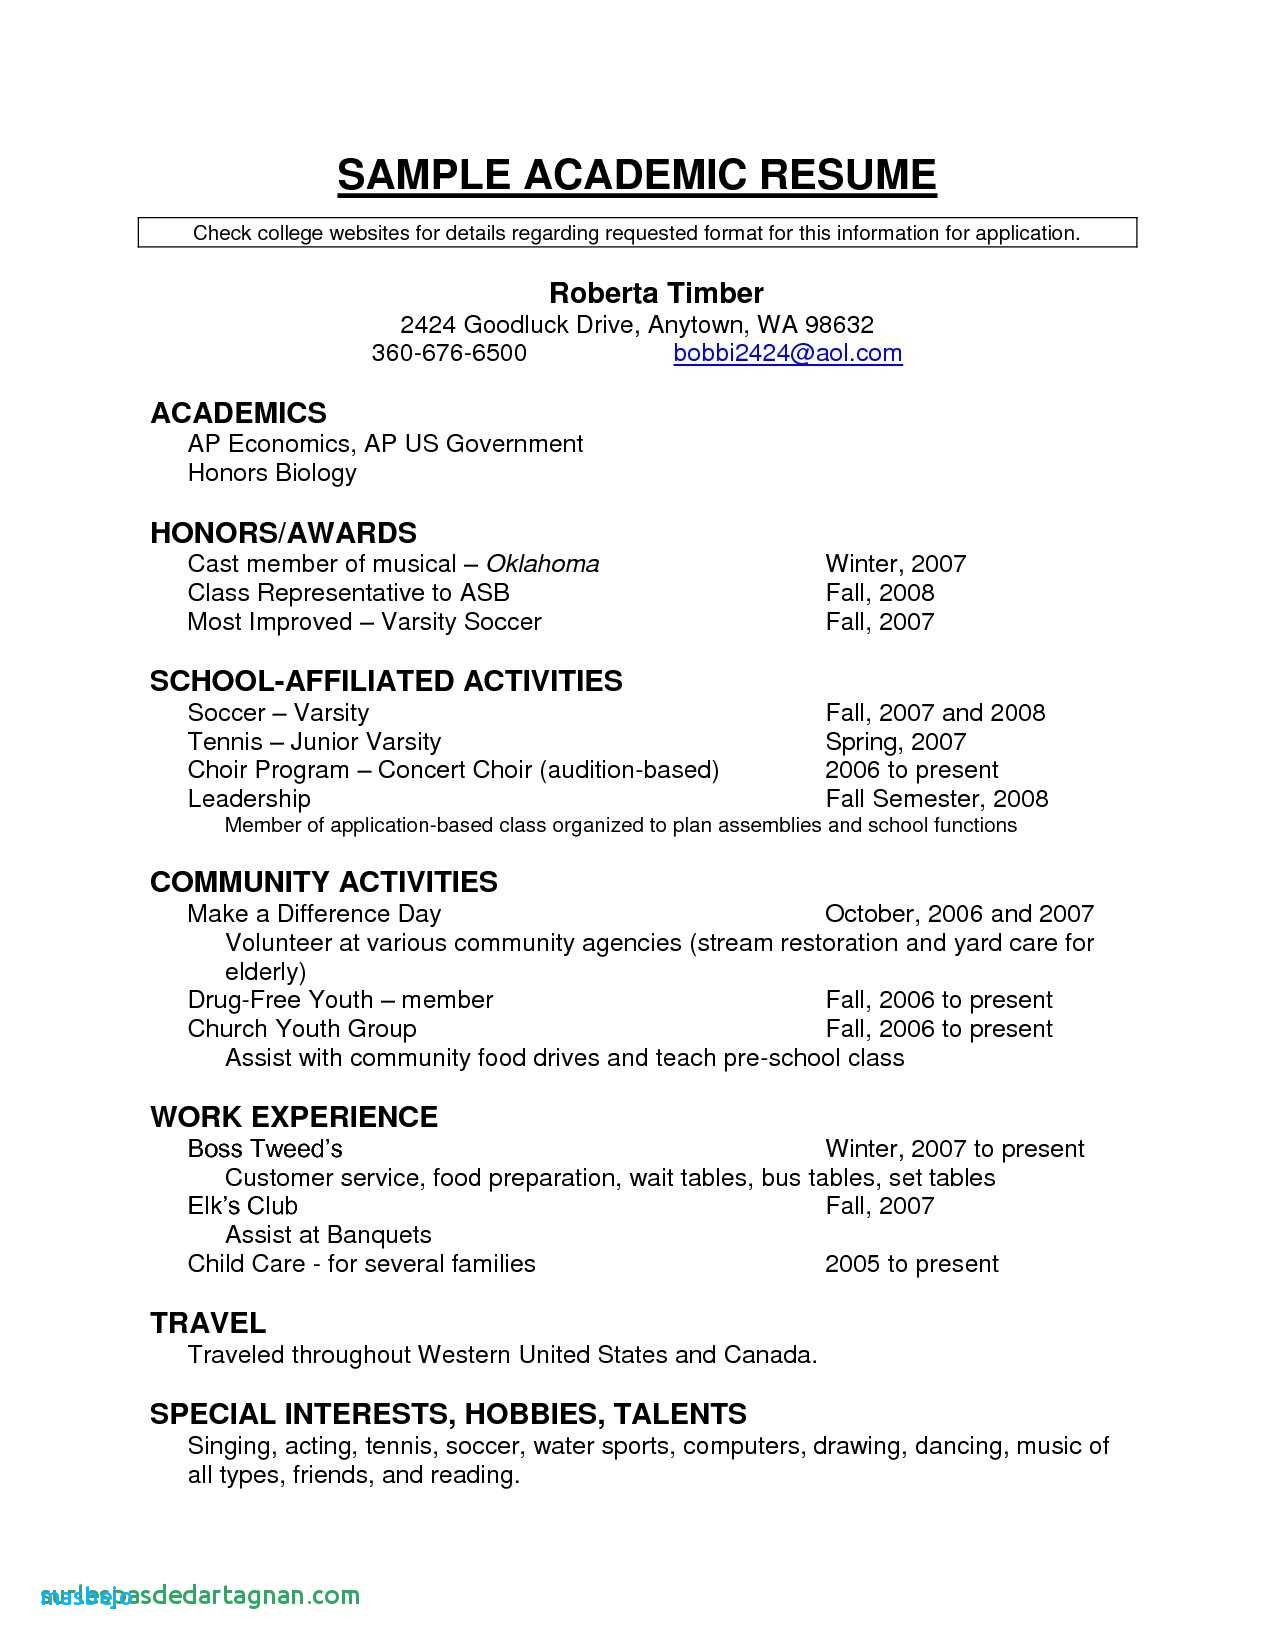 Youth Ministry Resume Template - Puter Resume Examples Unique Resume for Highschool Students